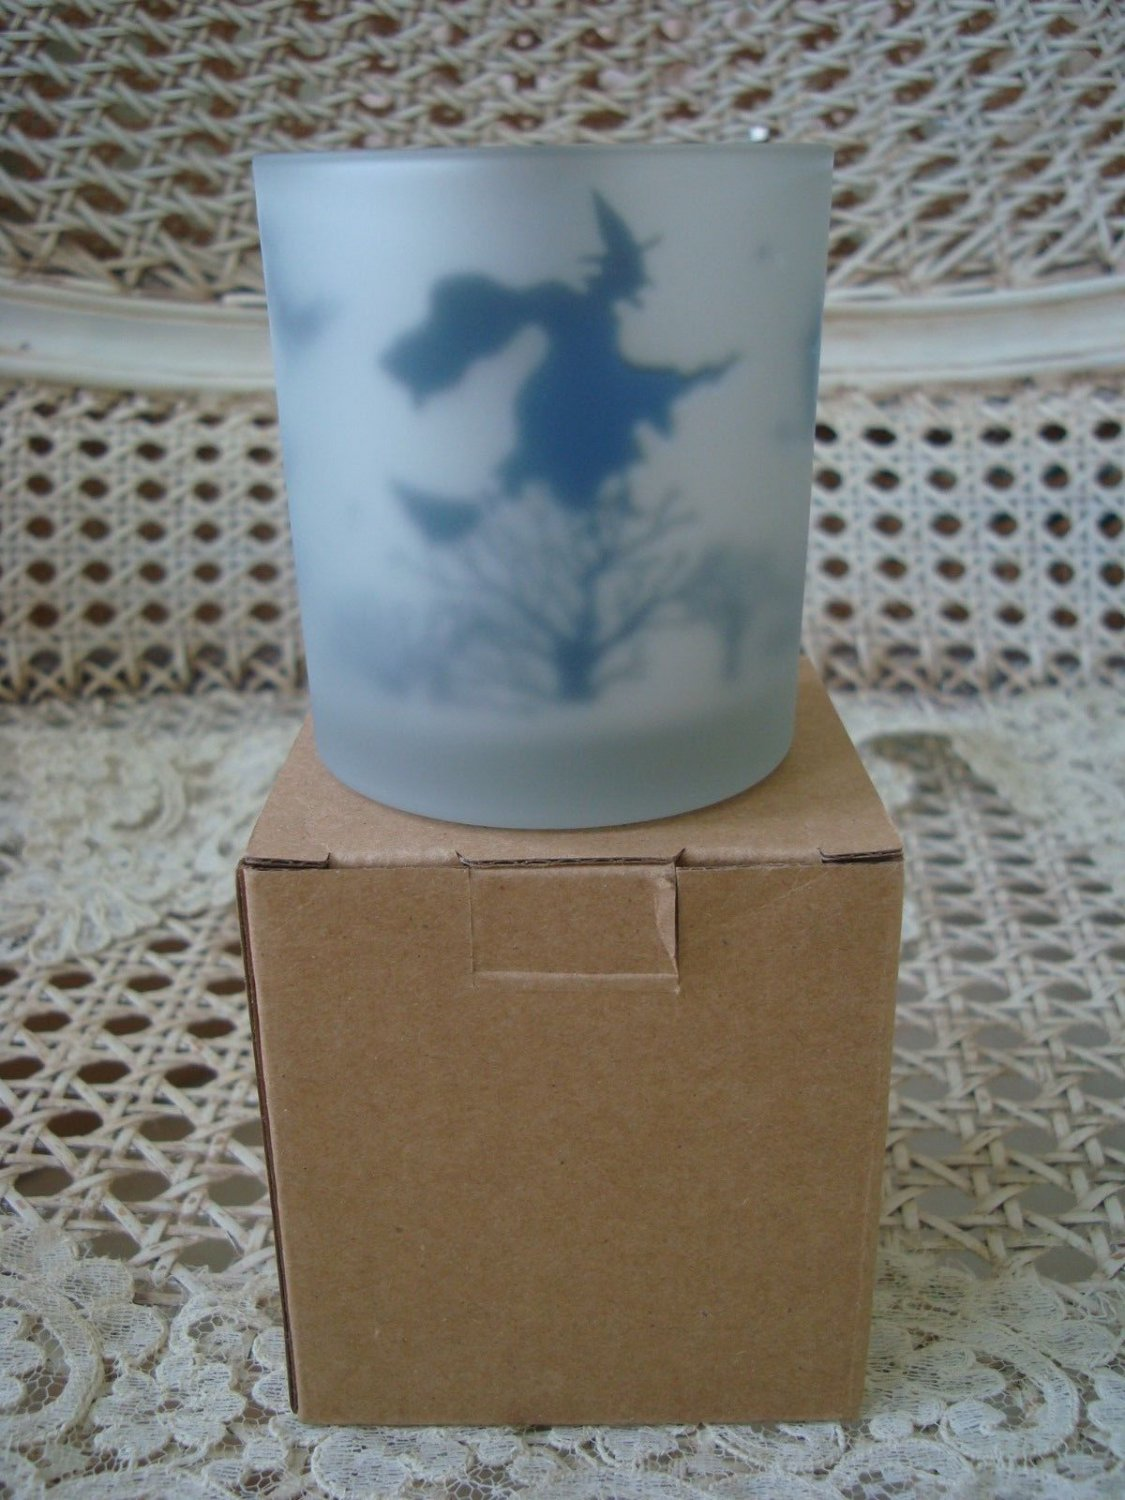 YANKEE CANDLE FLICKERING WITCH HALLOWEEN VOTIVE CANDLE HOLDER NEW IN BOX RETIRED